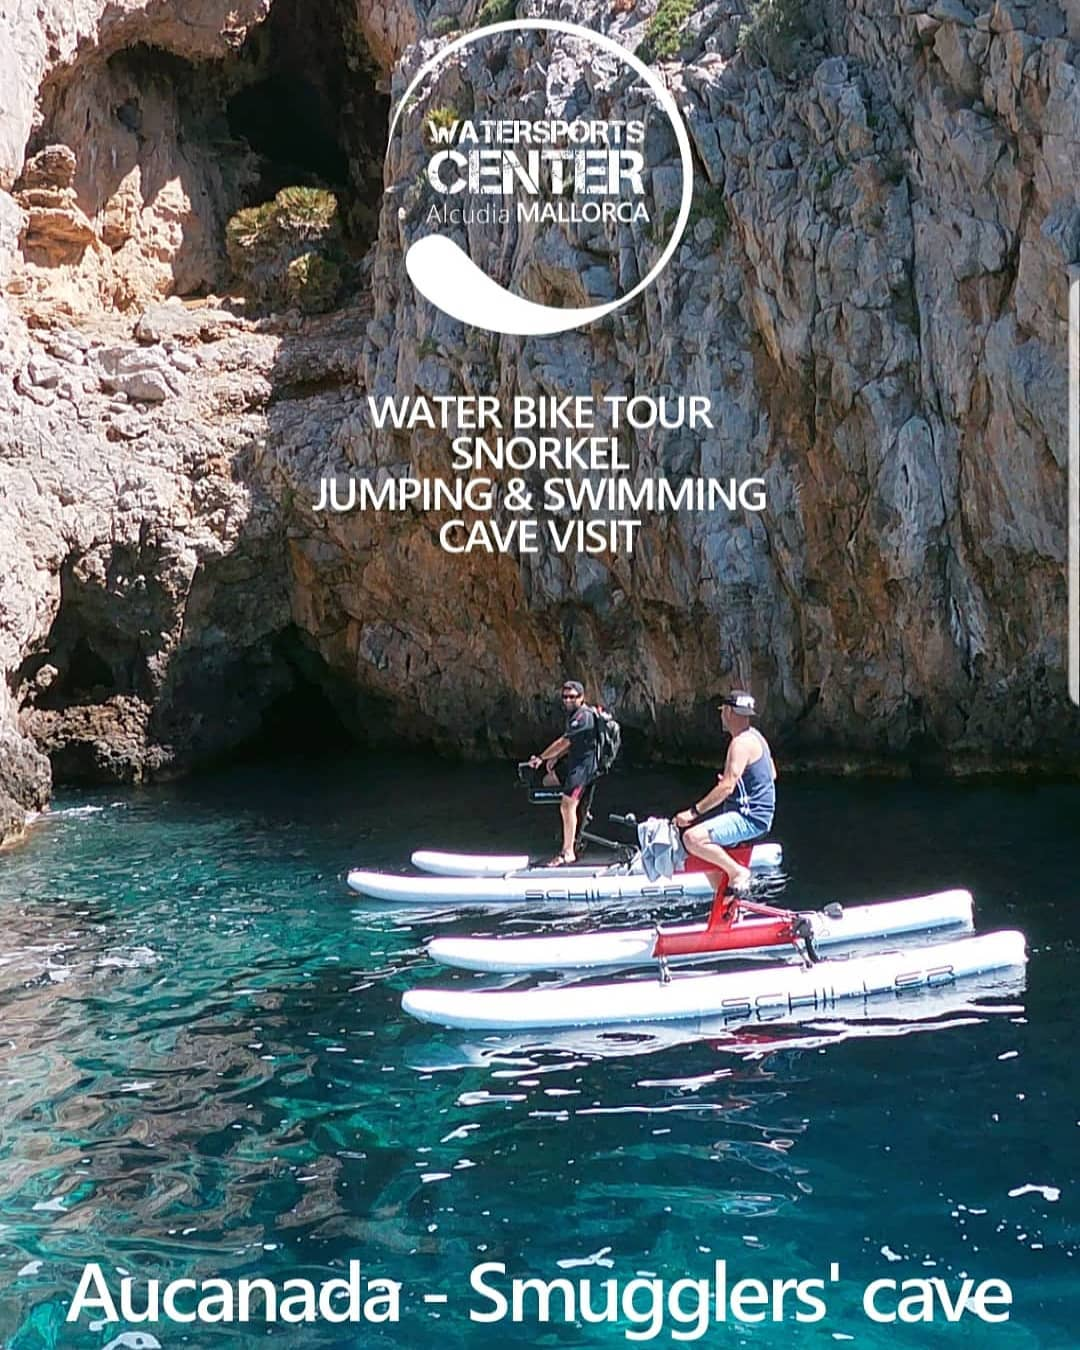 The best way to know the environment, its hidden coves, caves and crystalline bottoms. Water Bikes guided tours.  Pirate life is much better.  La mejor forma de conocer el entorno,sus calas escondidas,cuevas y fondos cristalinos